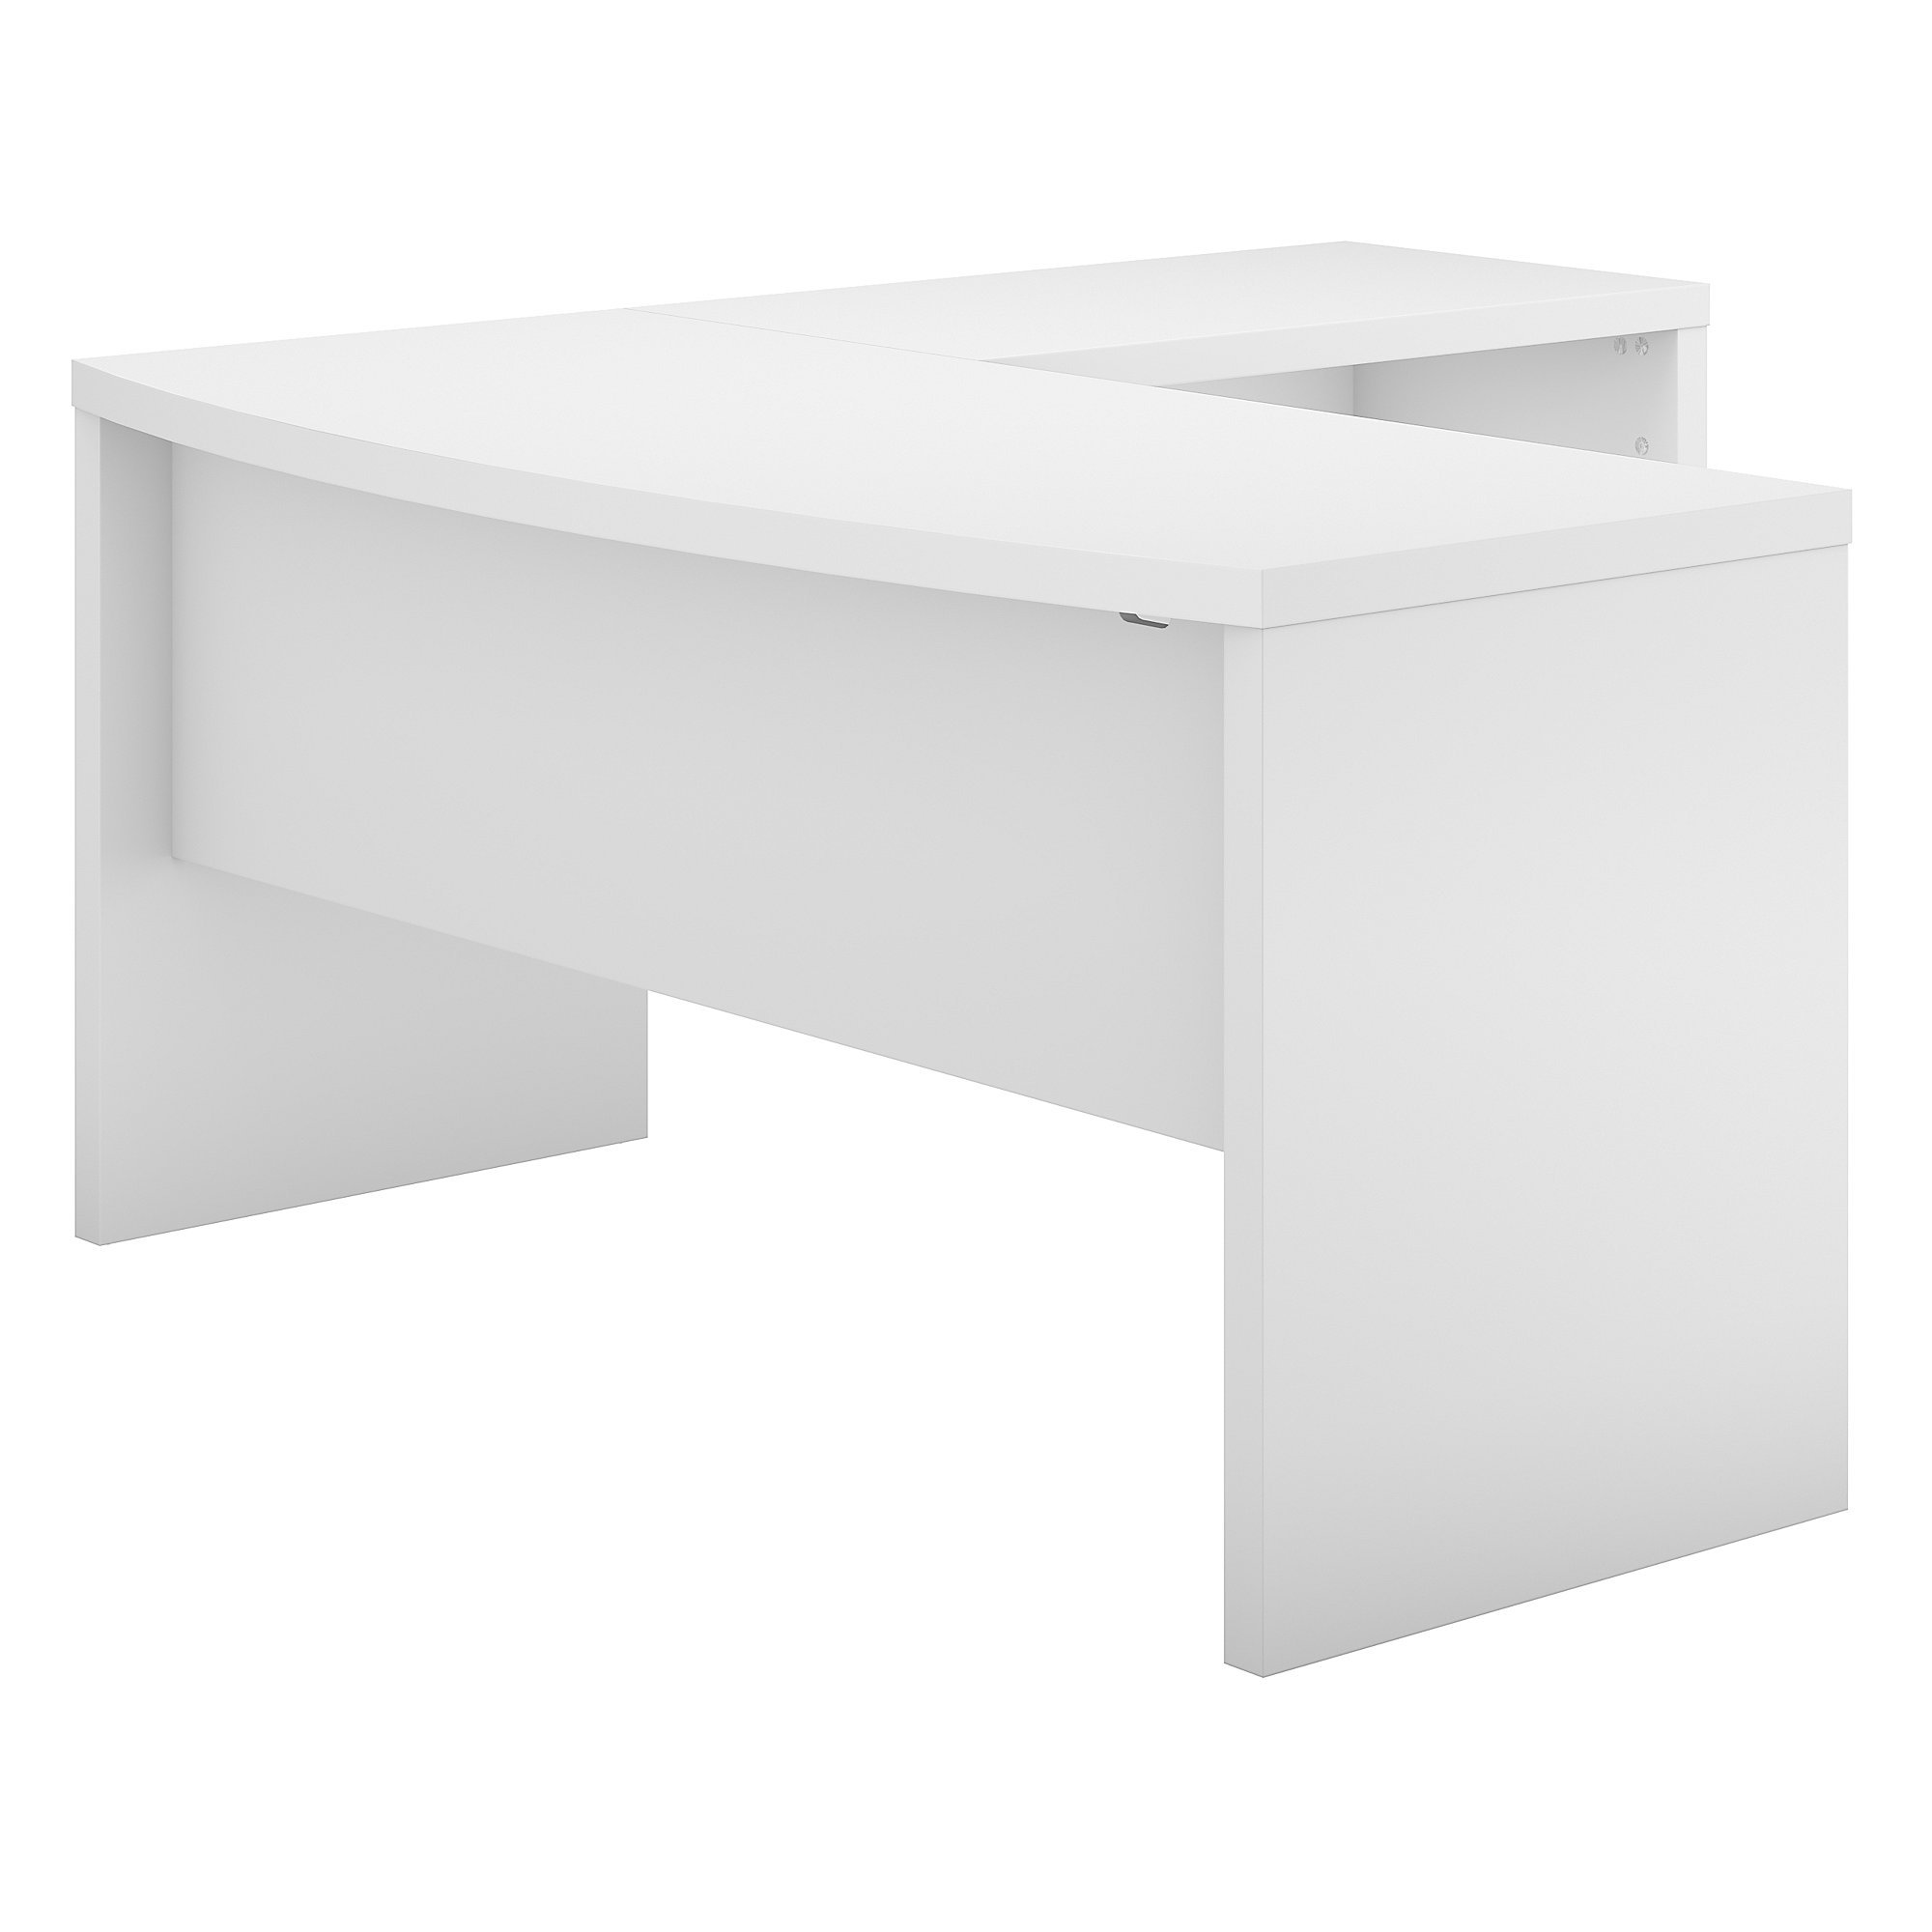 Office by kathy ireland Echo L Shaped Bow Front Desk in Pure White by Office by kathy ireland